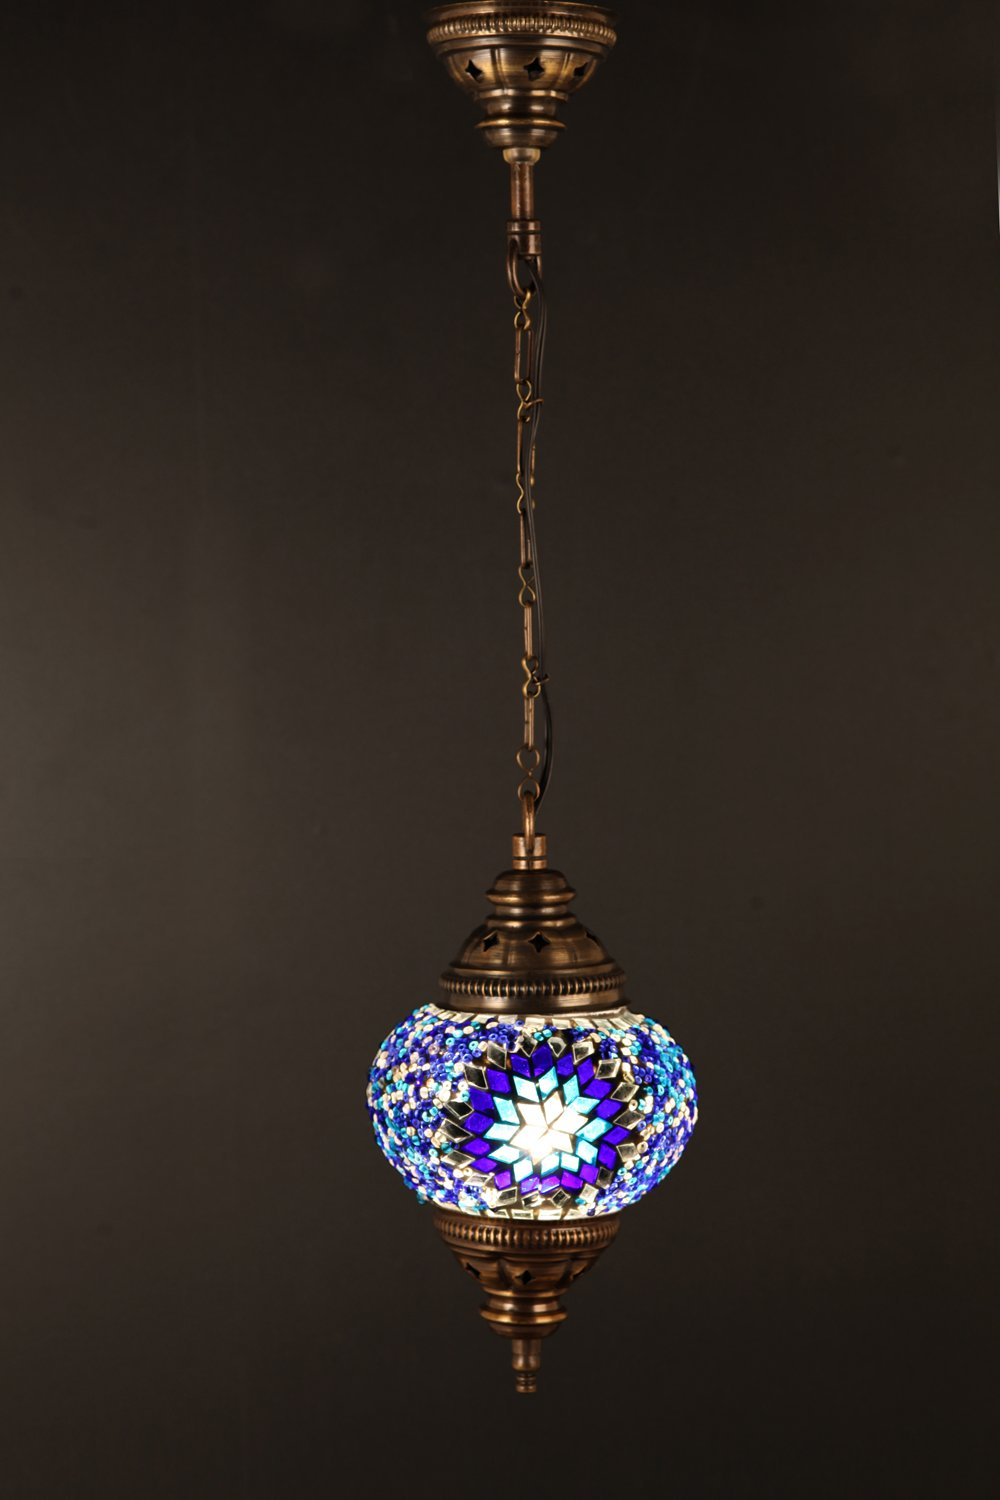 (Height: 7.9 in) Mosaic Chandelier Set 1 Single Globe, Handmade Authentic Tiffany Lighting Moroccan Lamp Glass Stunning Bedside Night Lights Brass&Glass Ottoman Turkish Style